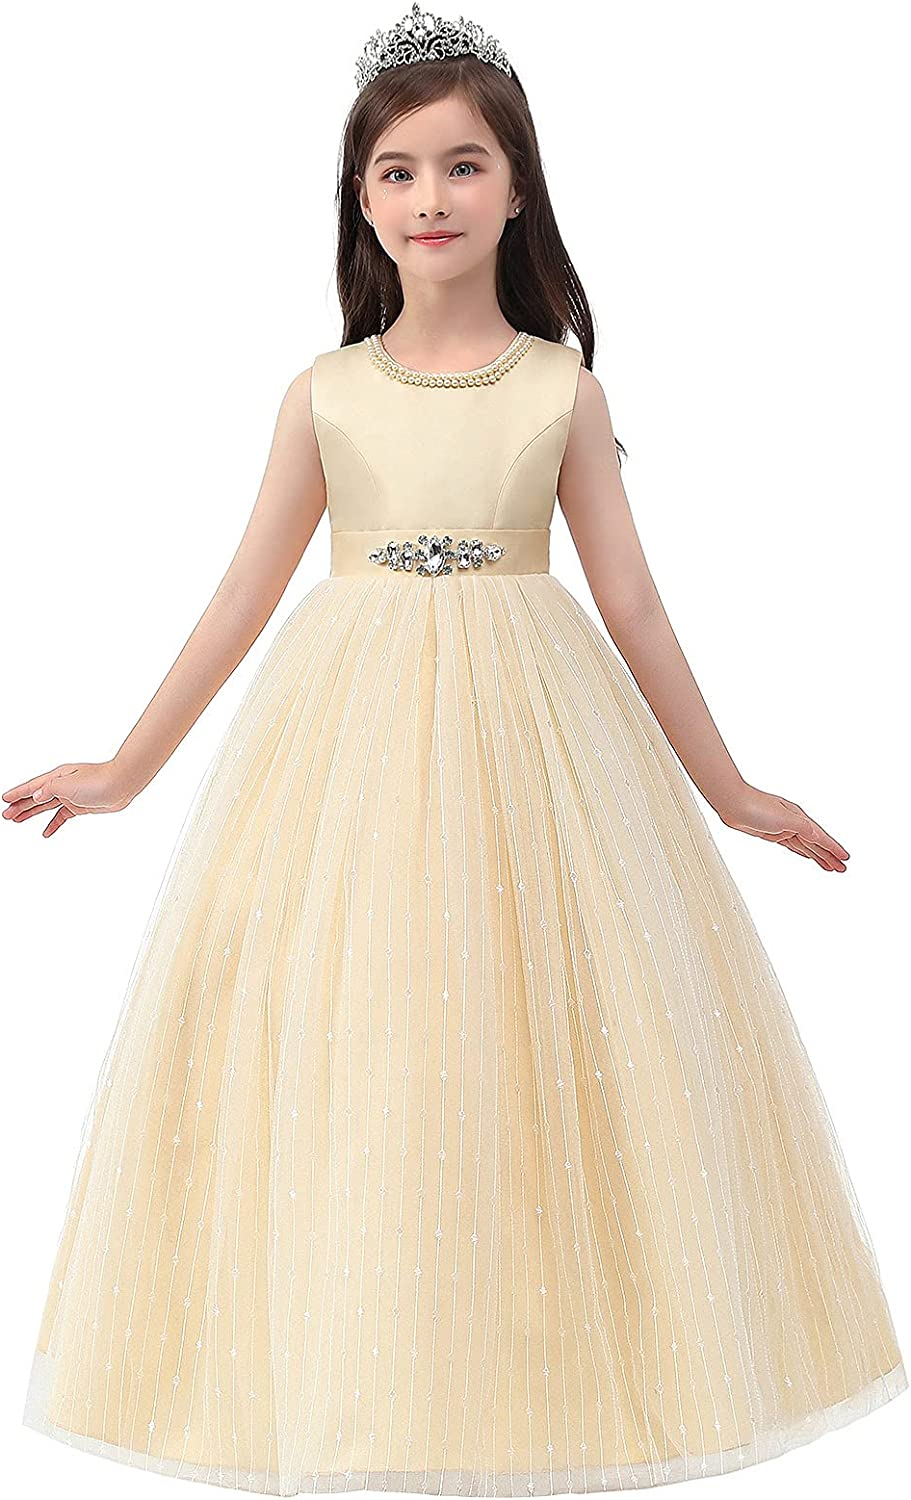 Girls Dress Party Bargain for Quality inspection Priness Length Cute Knee